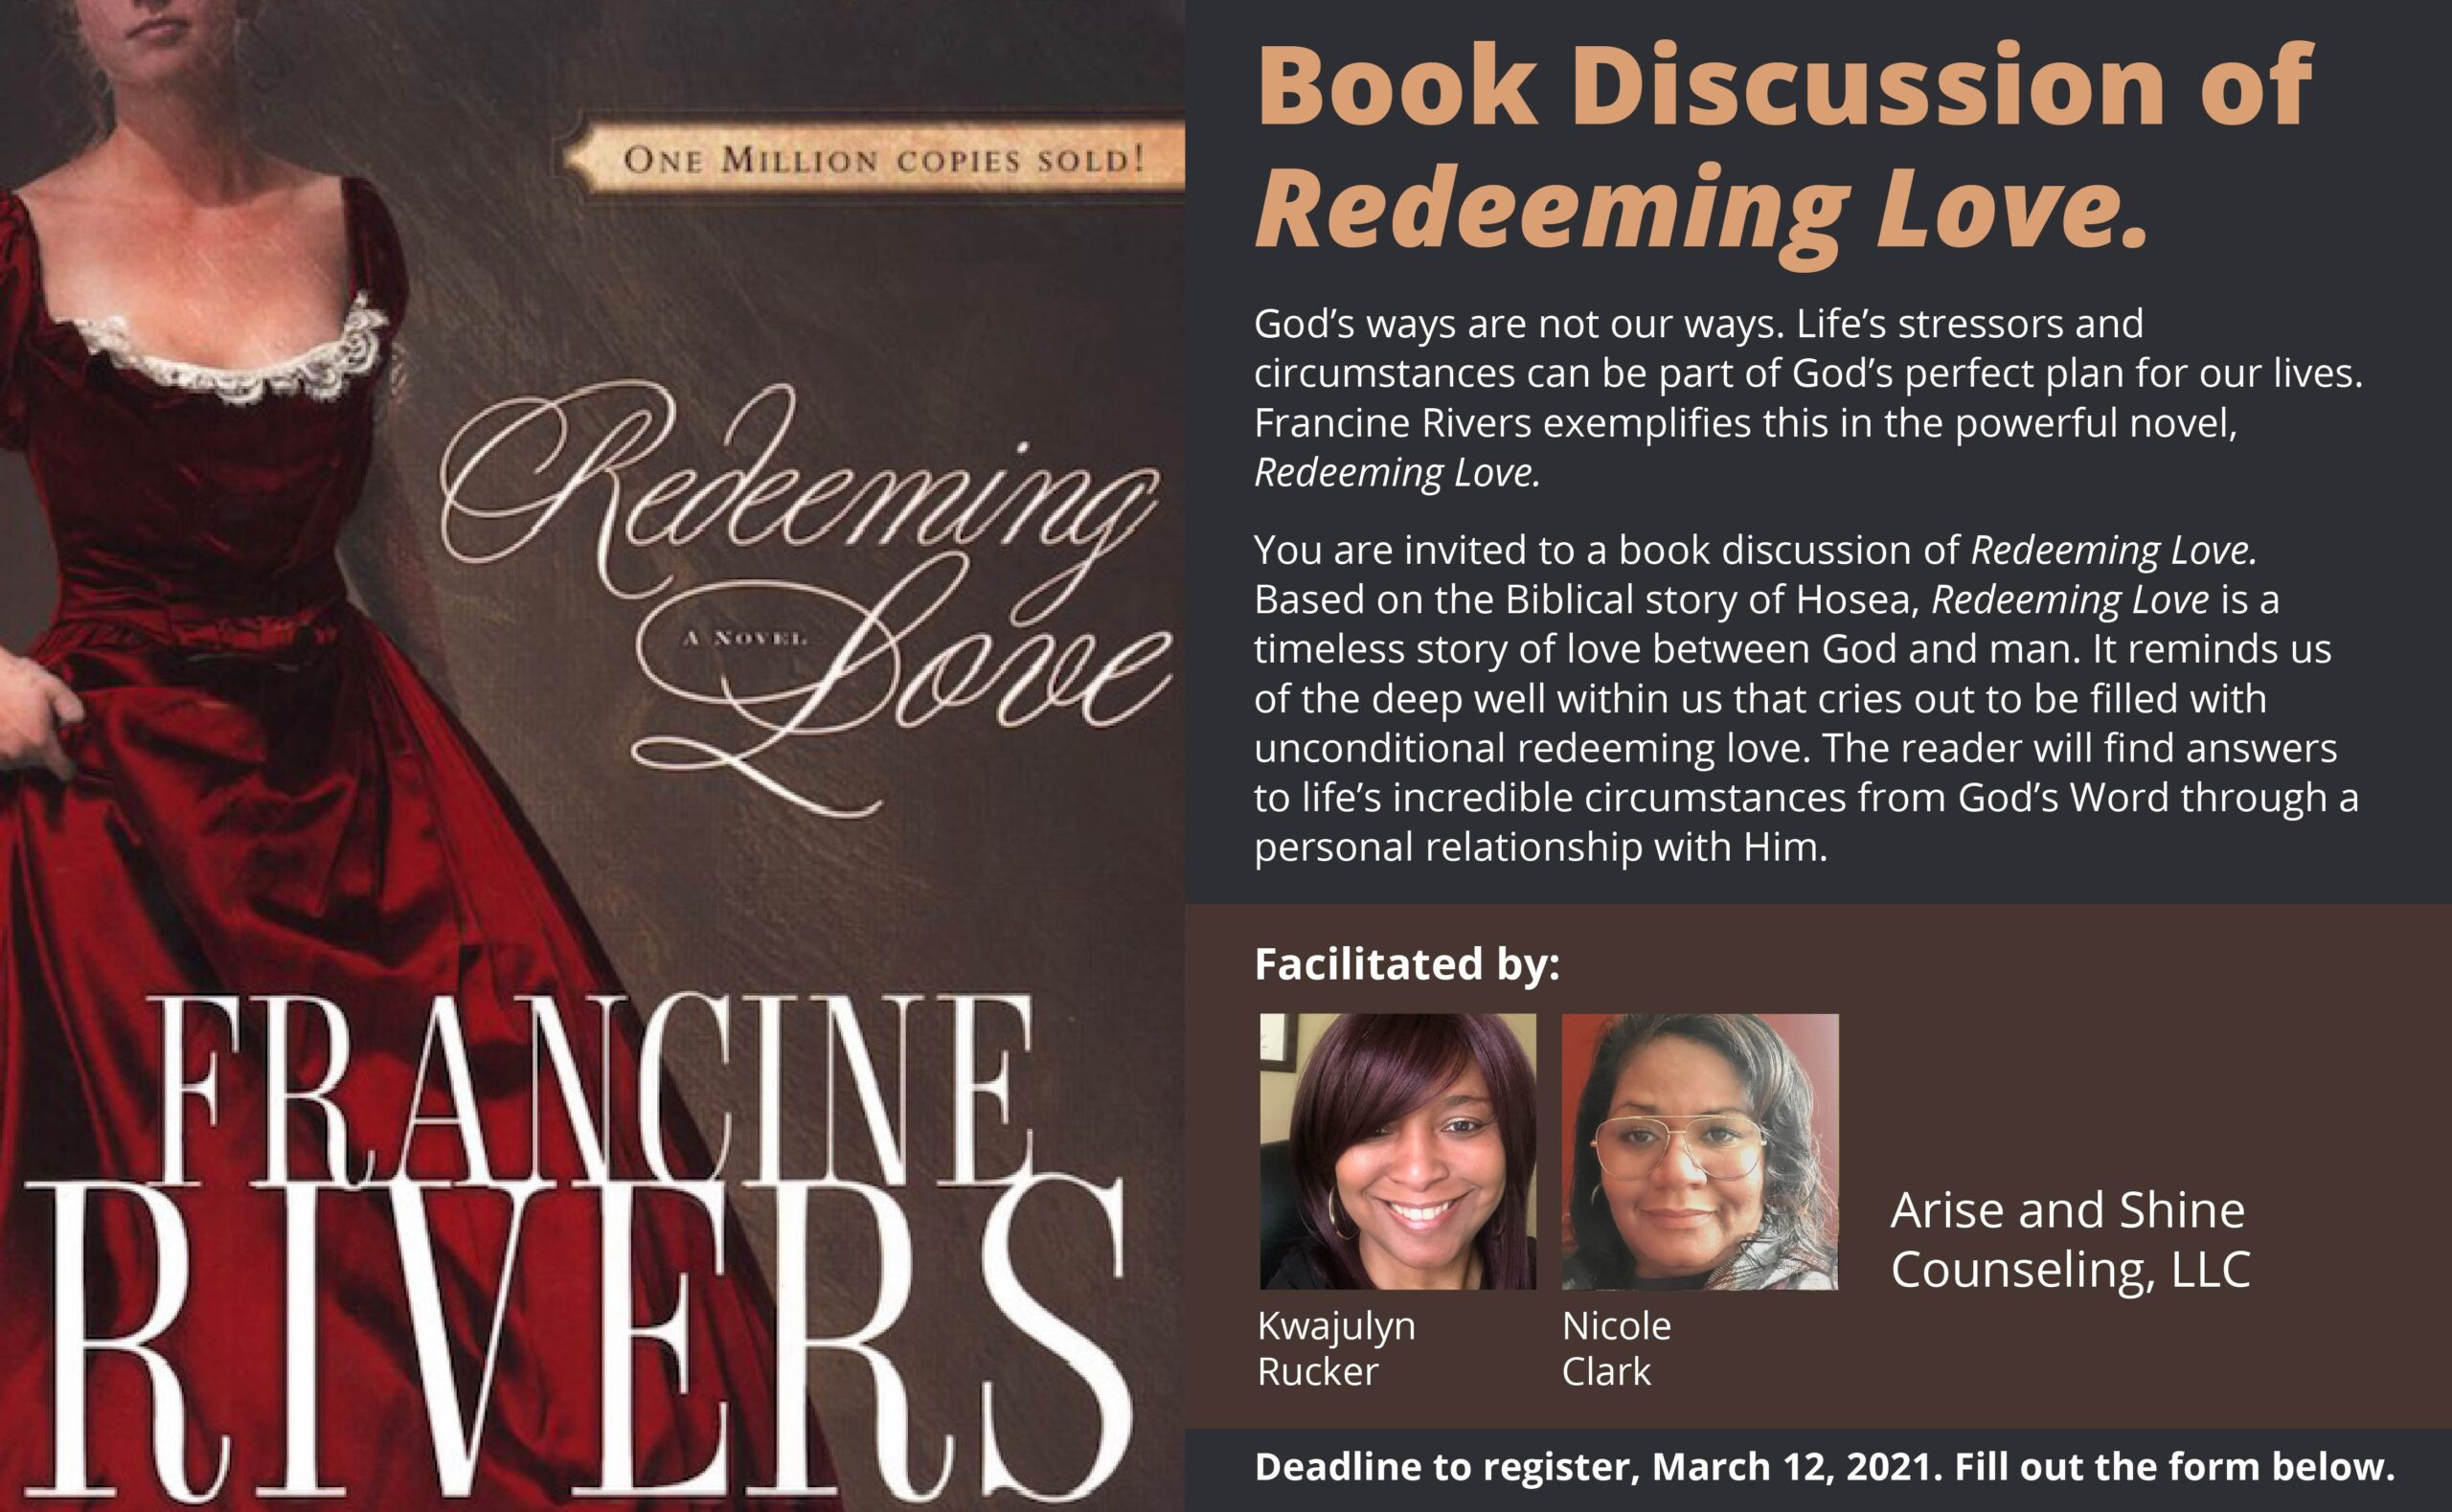 Zoom Book Discussion on Redeeming Love